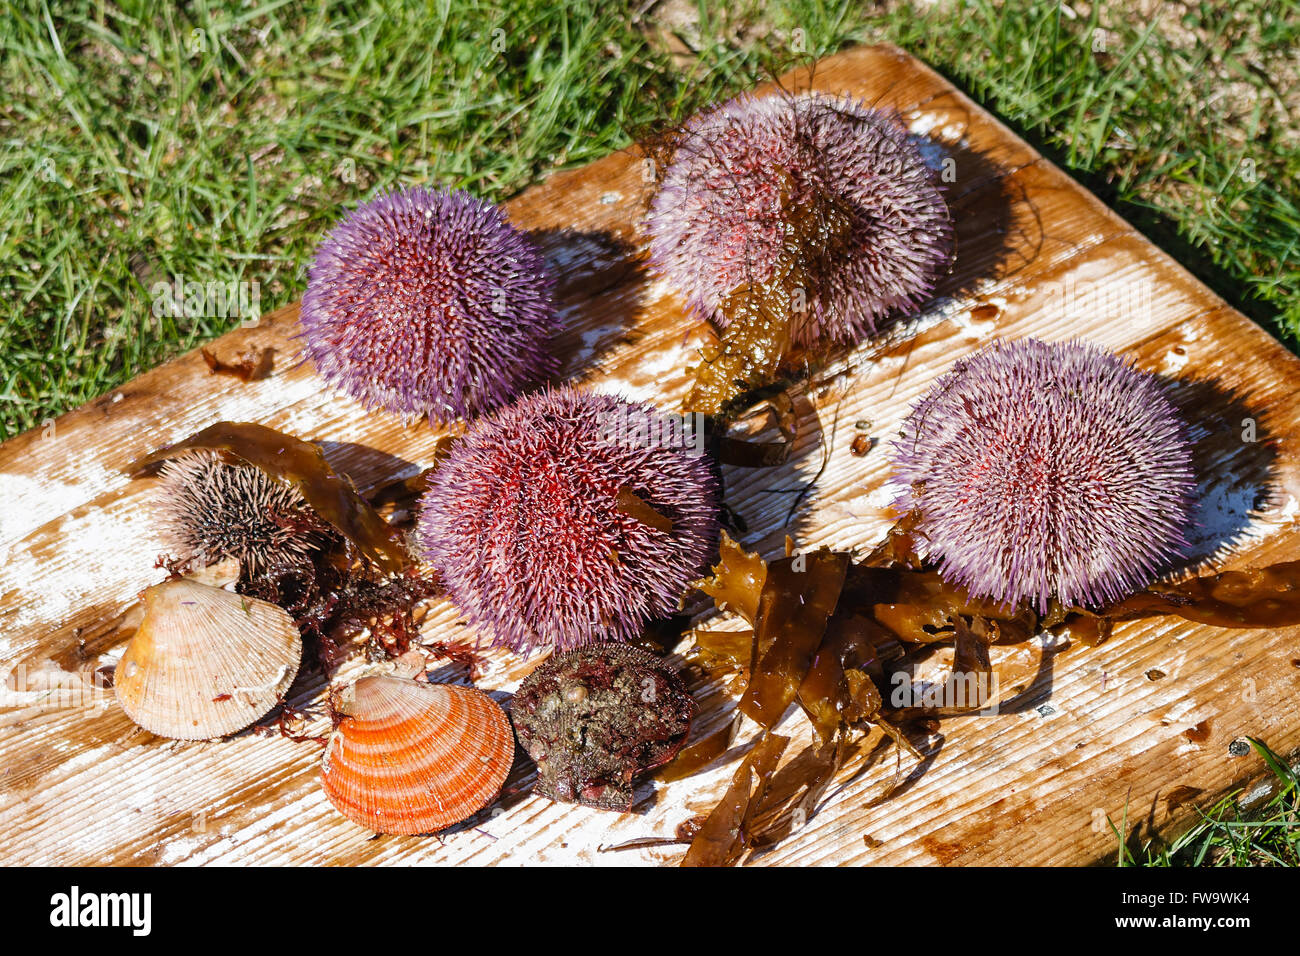 Sea hedgehogs and scallops whch have been just caught in the sea - Stock Image